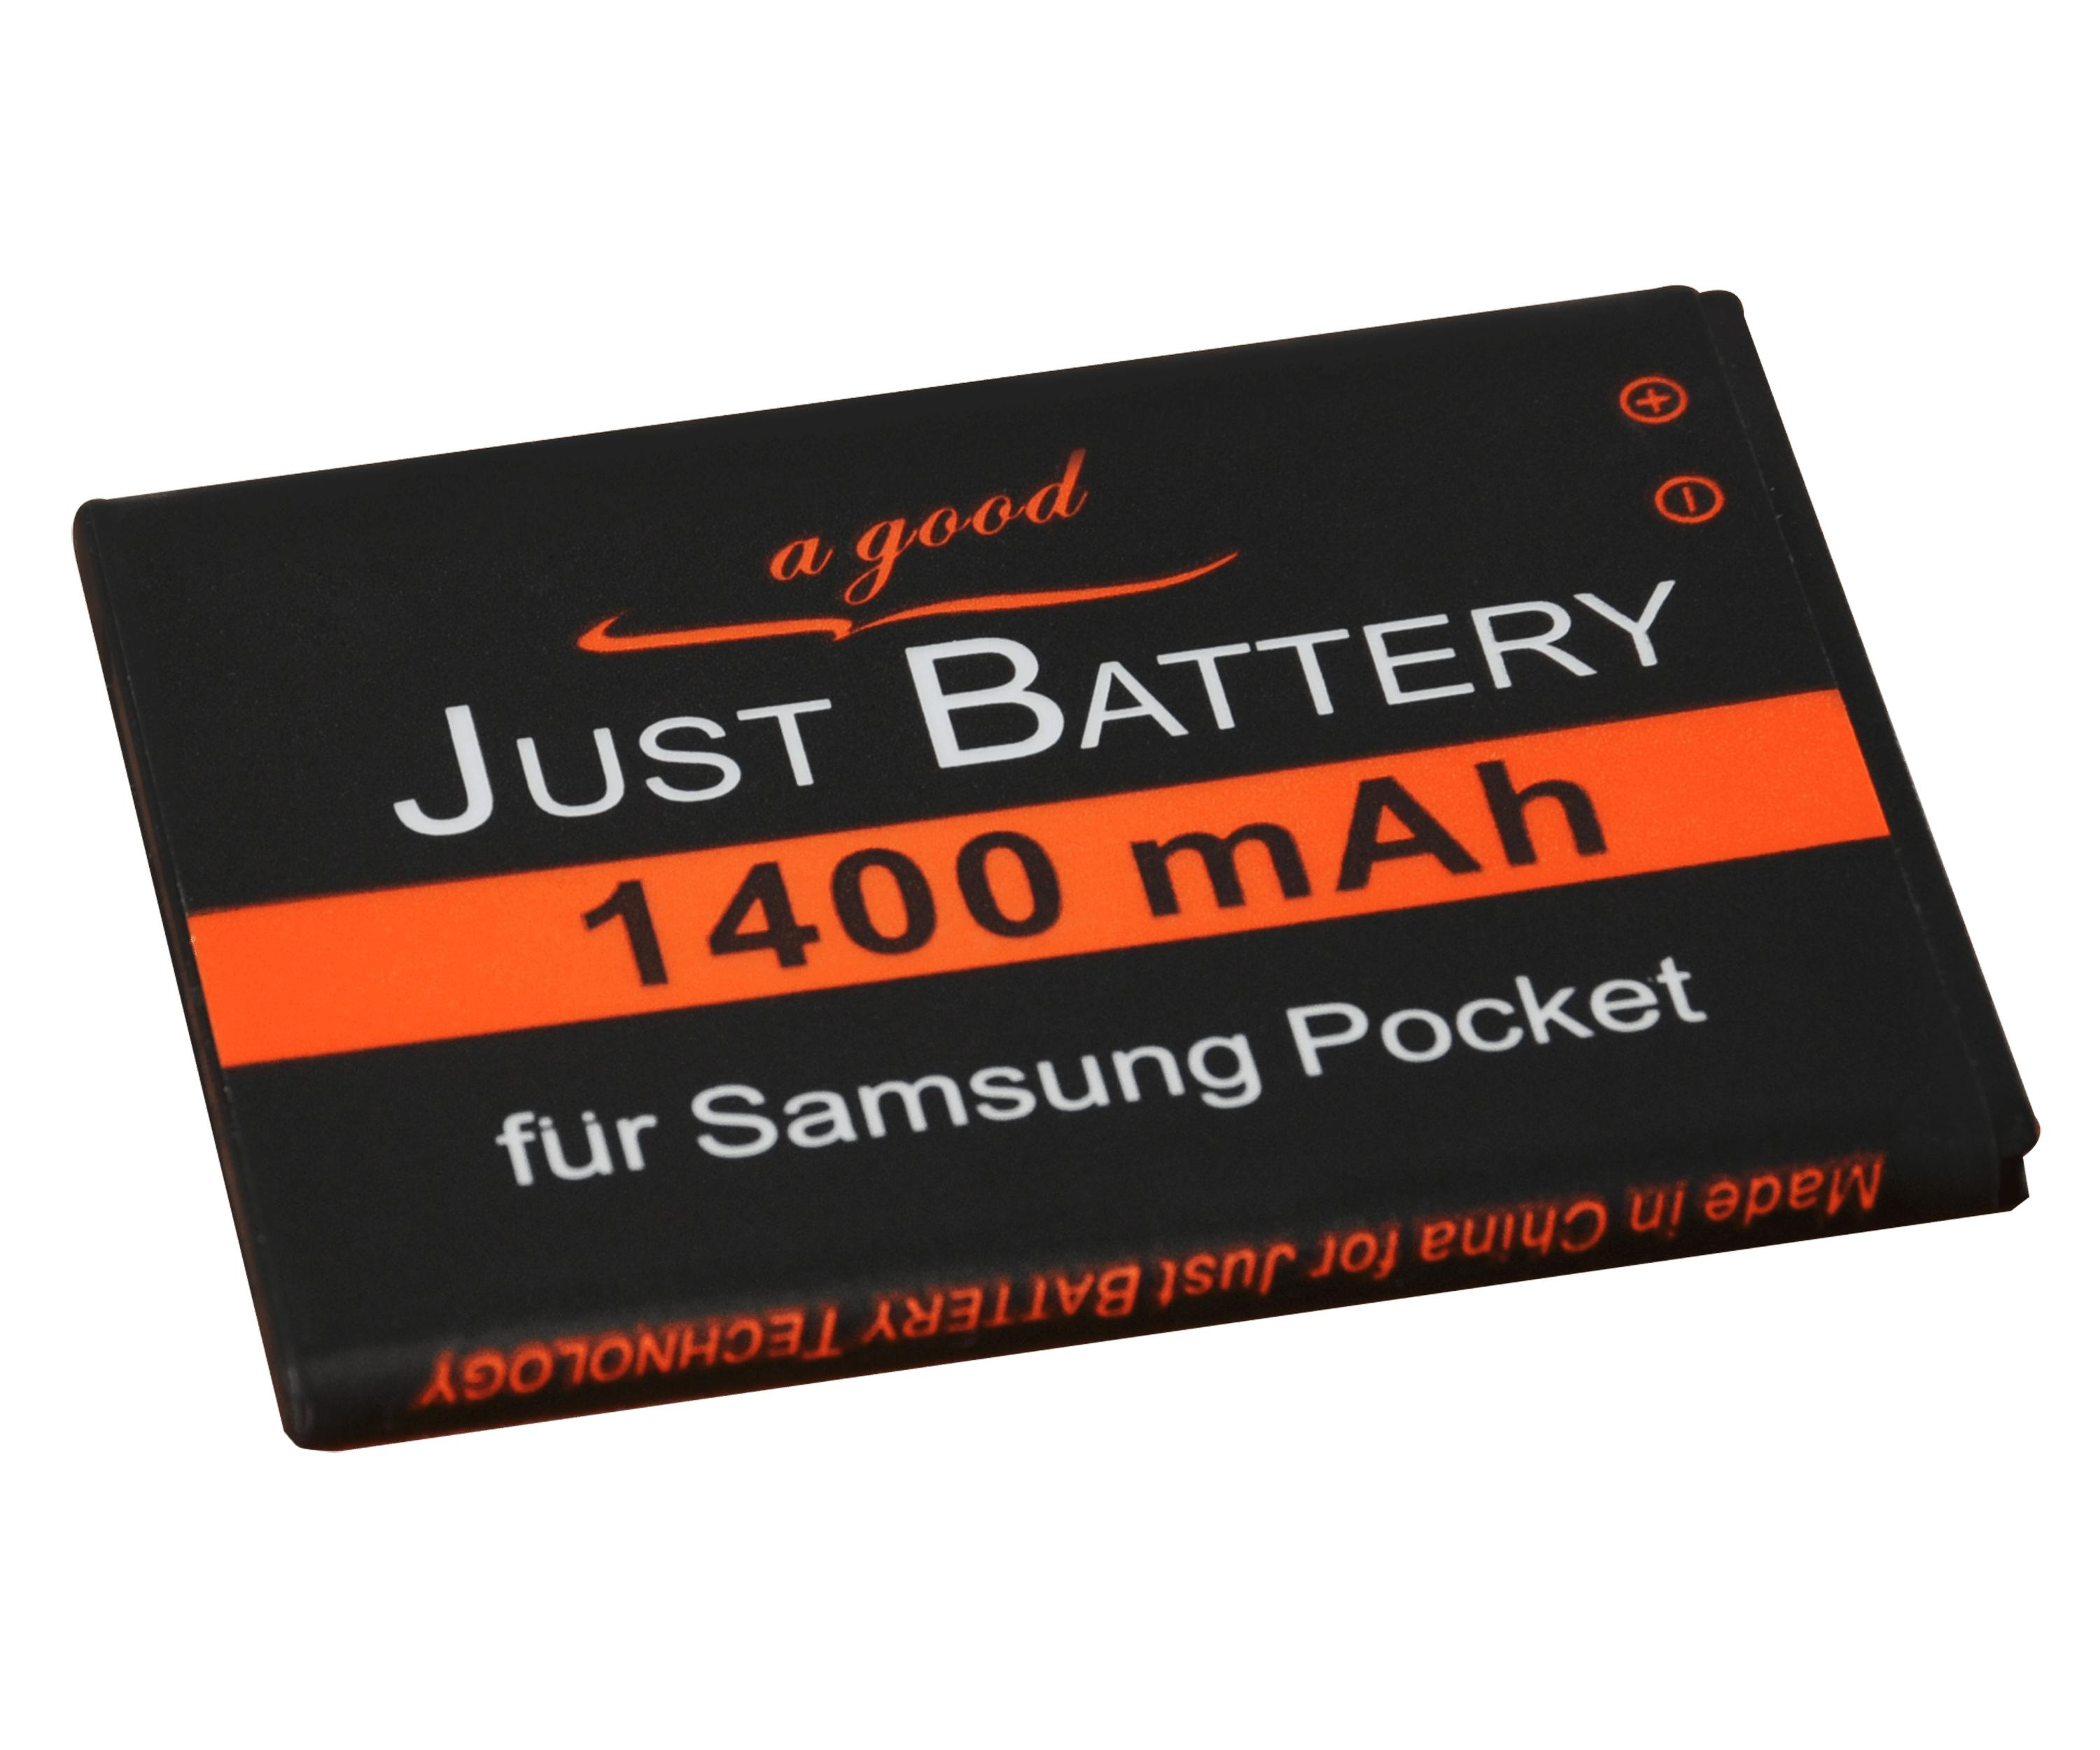 Battery for Samsung Galaxy Pocket plus GT-s5301